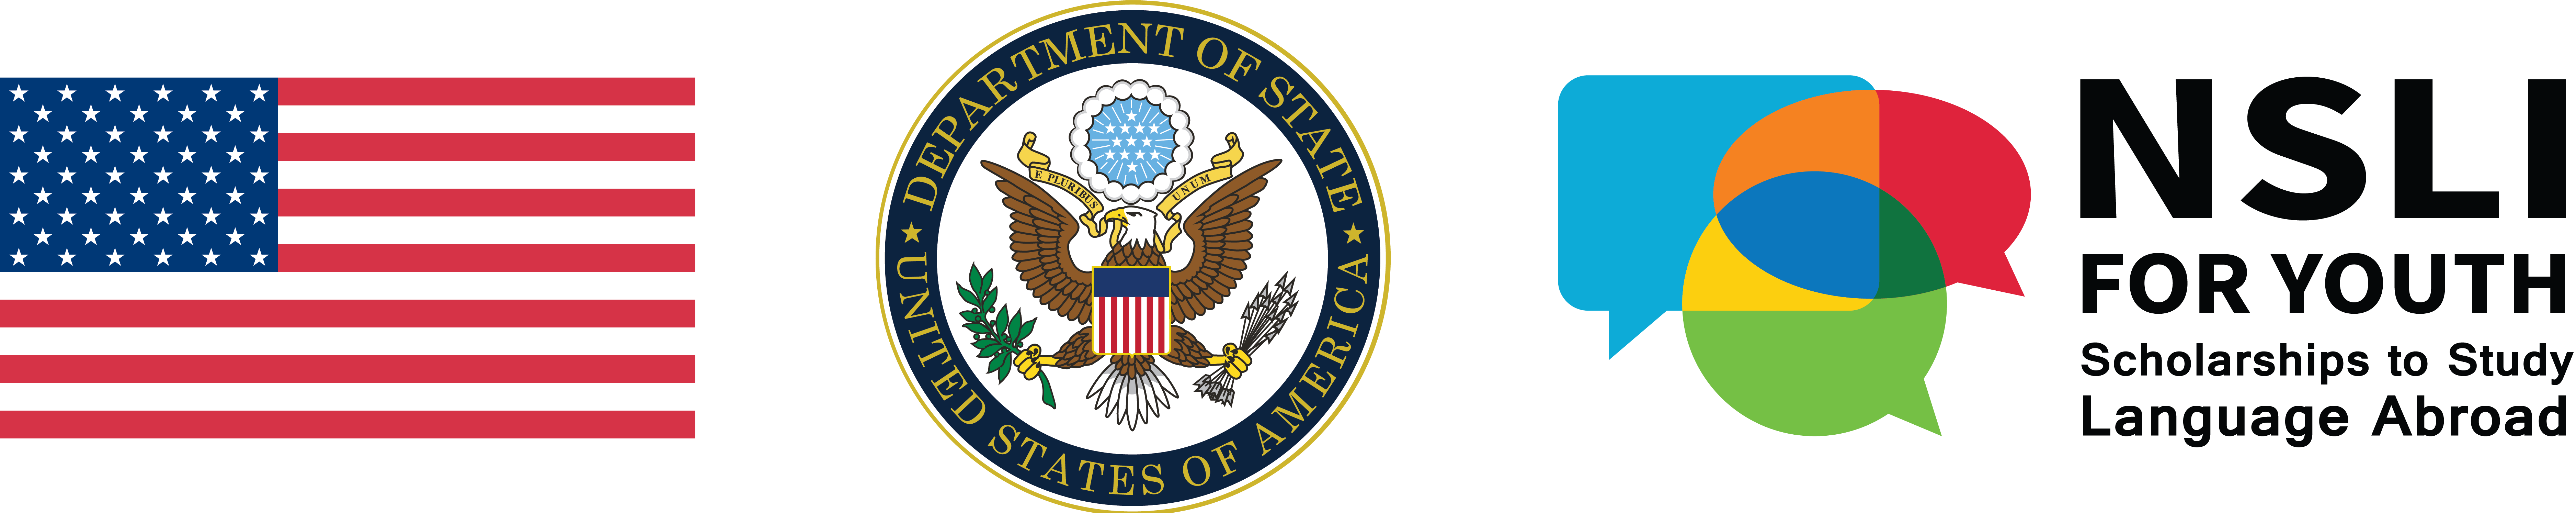 U.S. Dept of State and NSLI-Y Logos